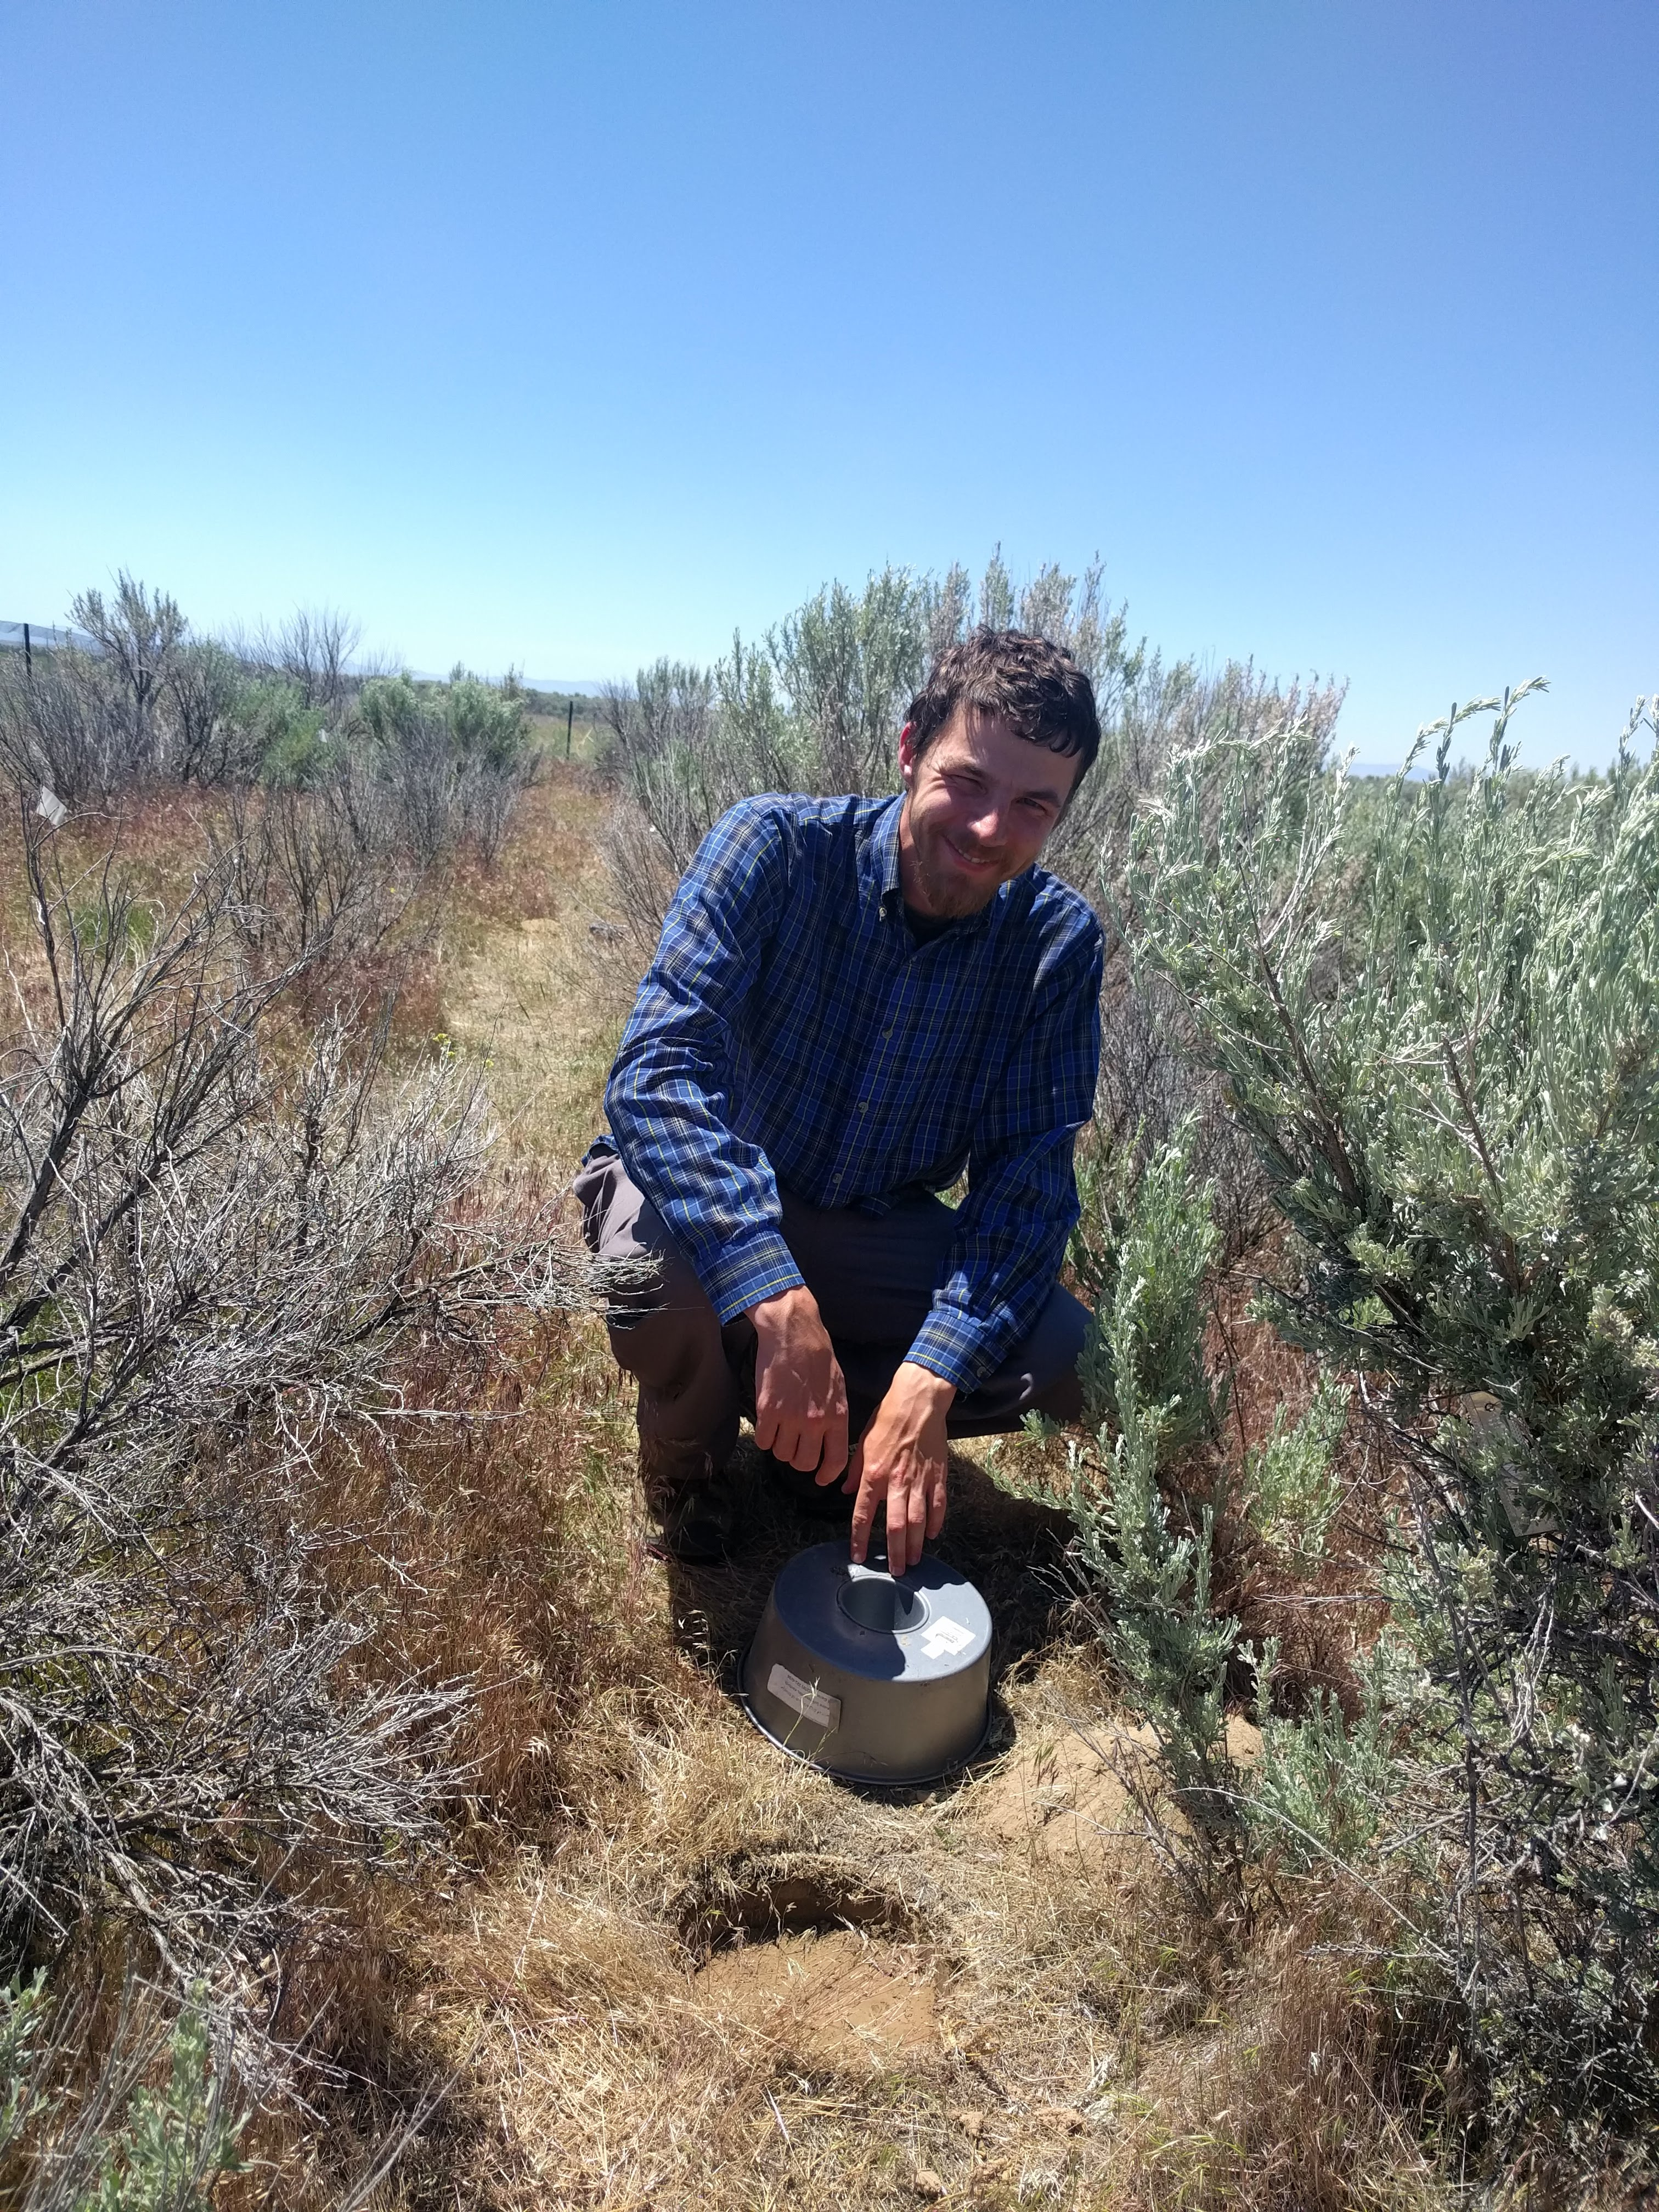 Student earns national award to research sagebrush conservation with satellite imagery - Boise State News